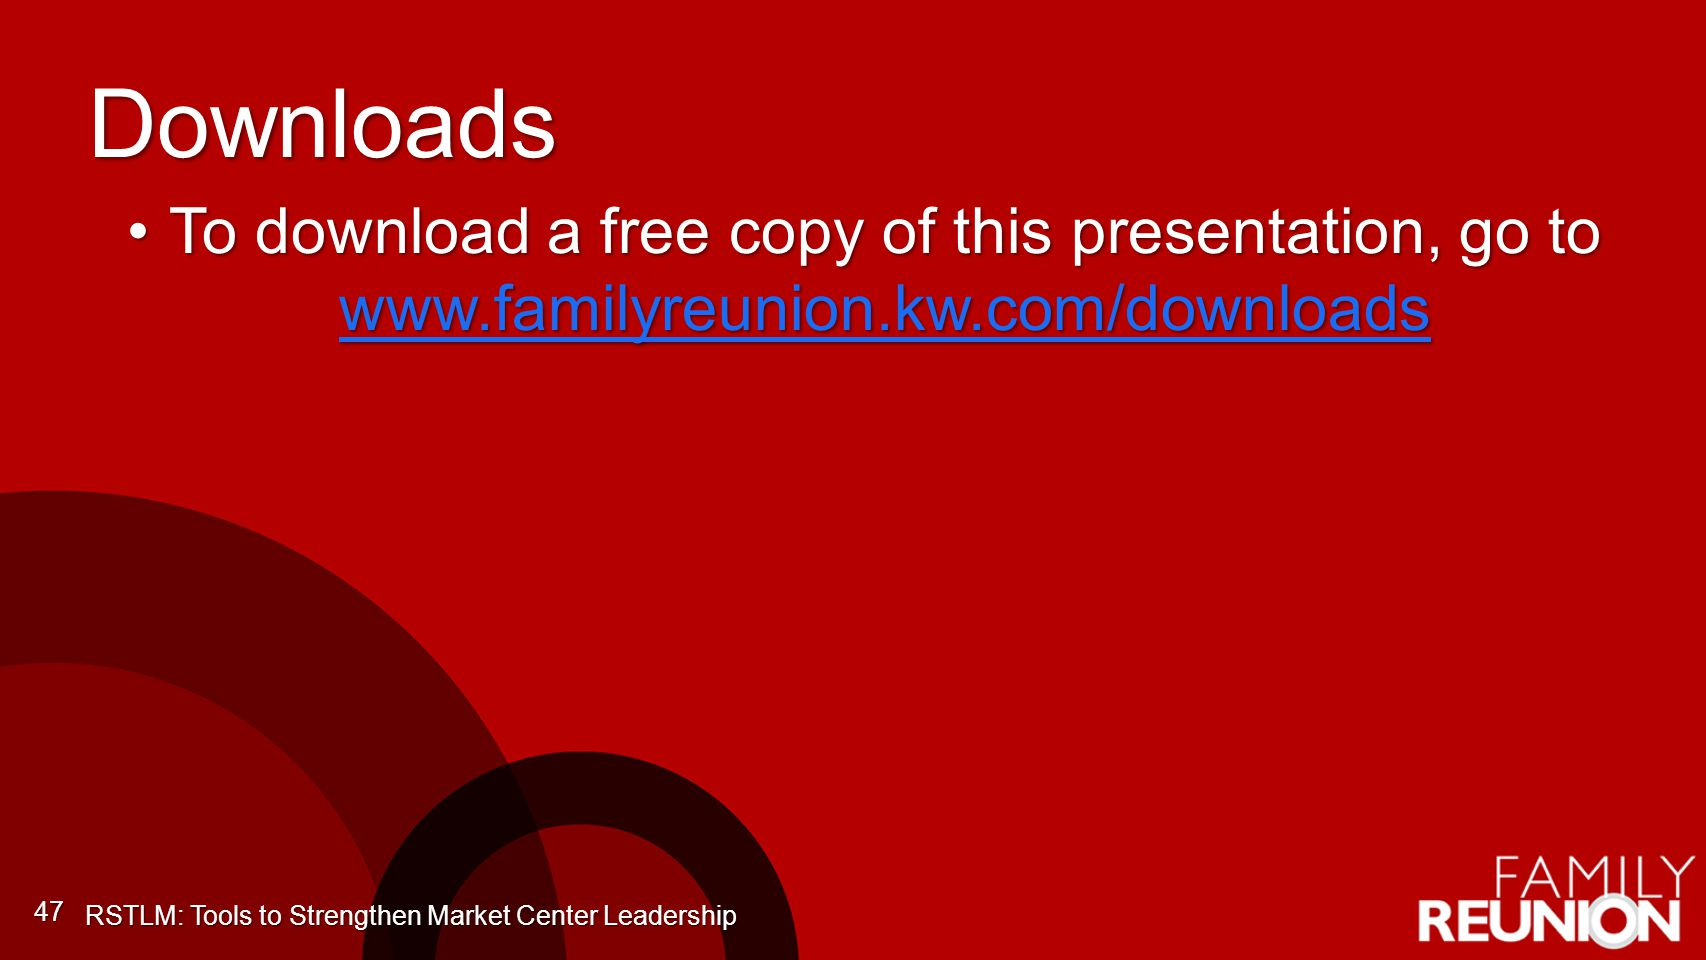 Downloads To download a free copy of this presentation, go to www.familyreunion.kw.com/downloadsTo download a free copy of this presentation, go to ww